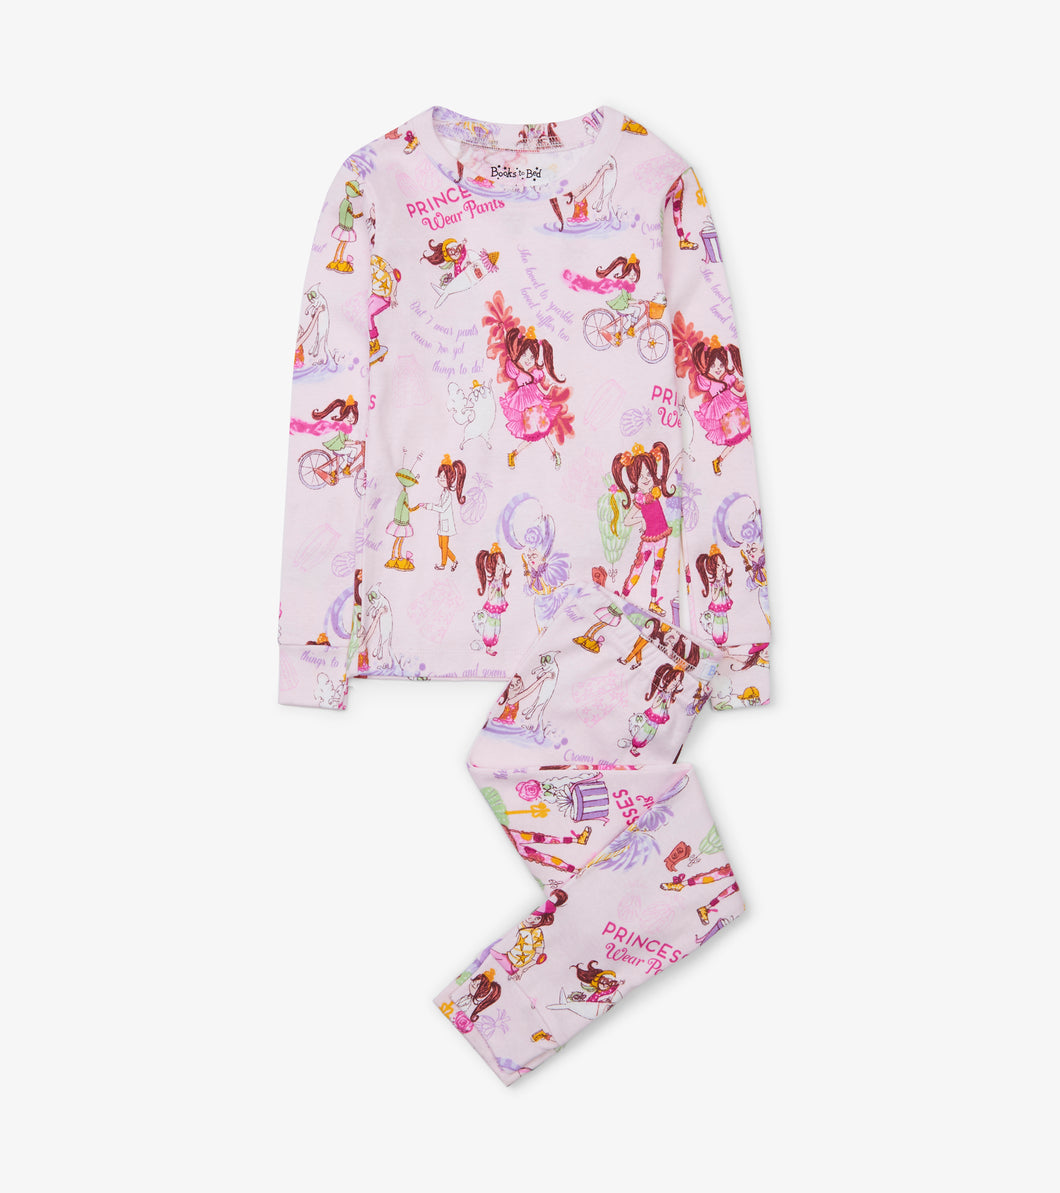 Books To Bed - Princess Wear Pants Pyjama